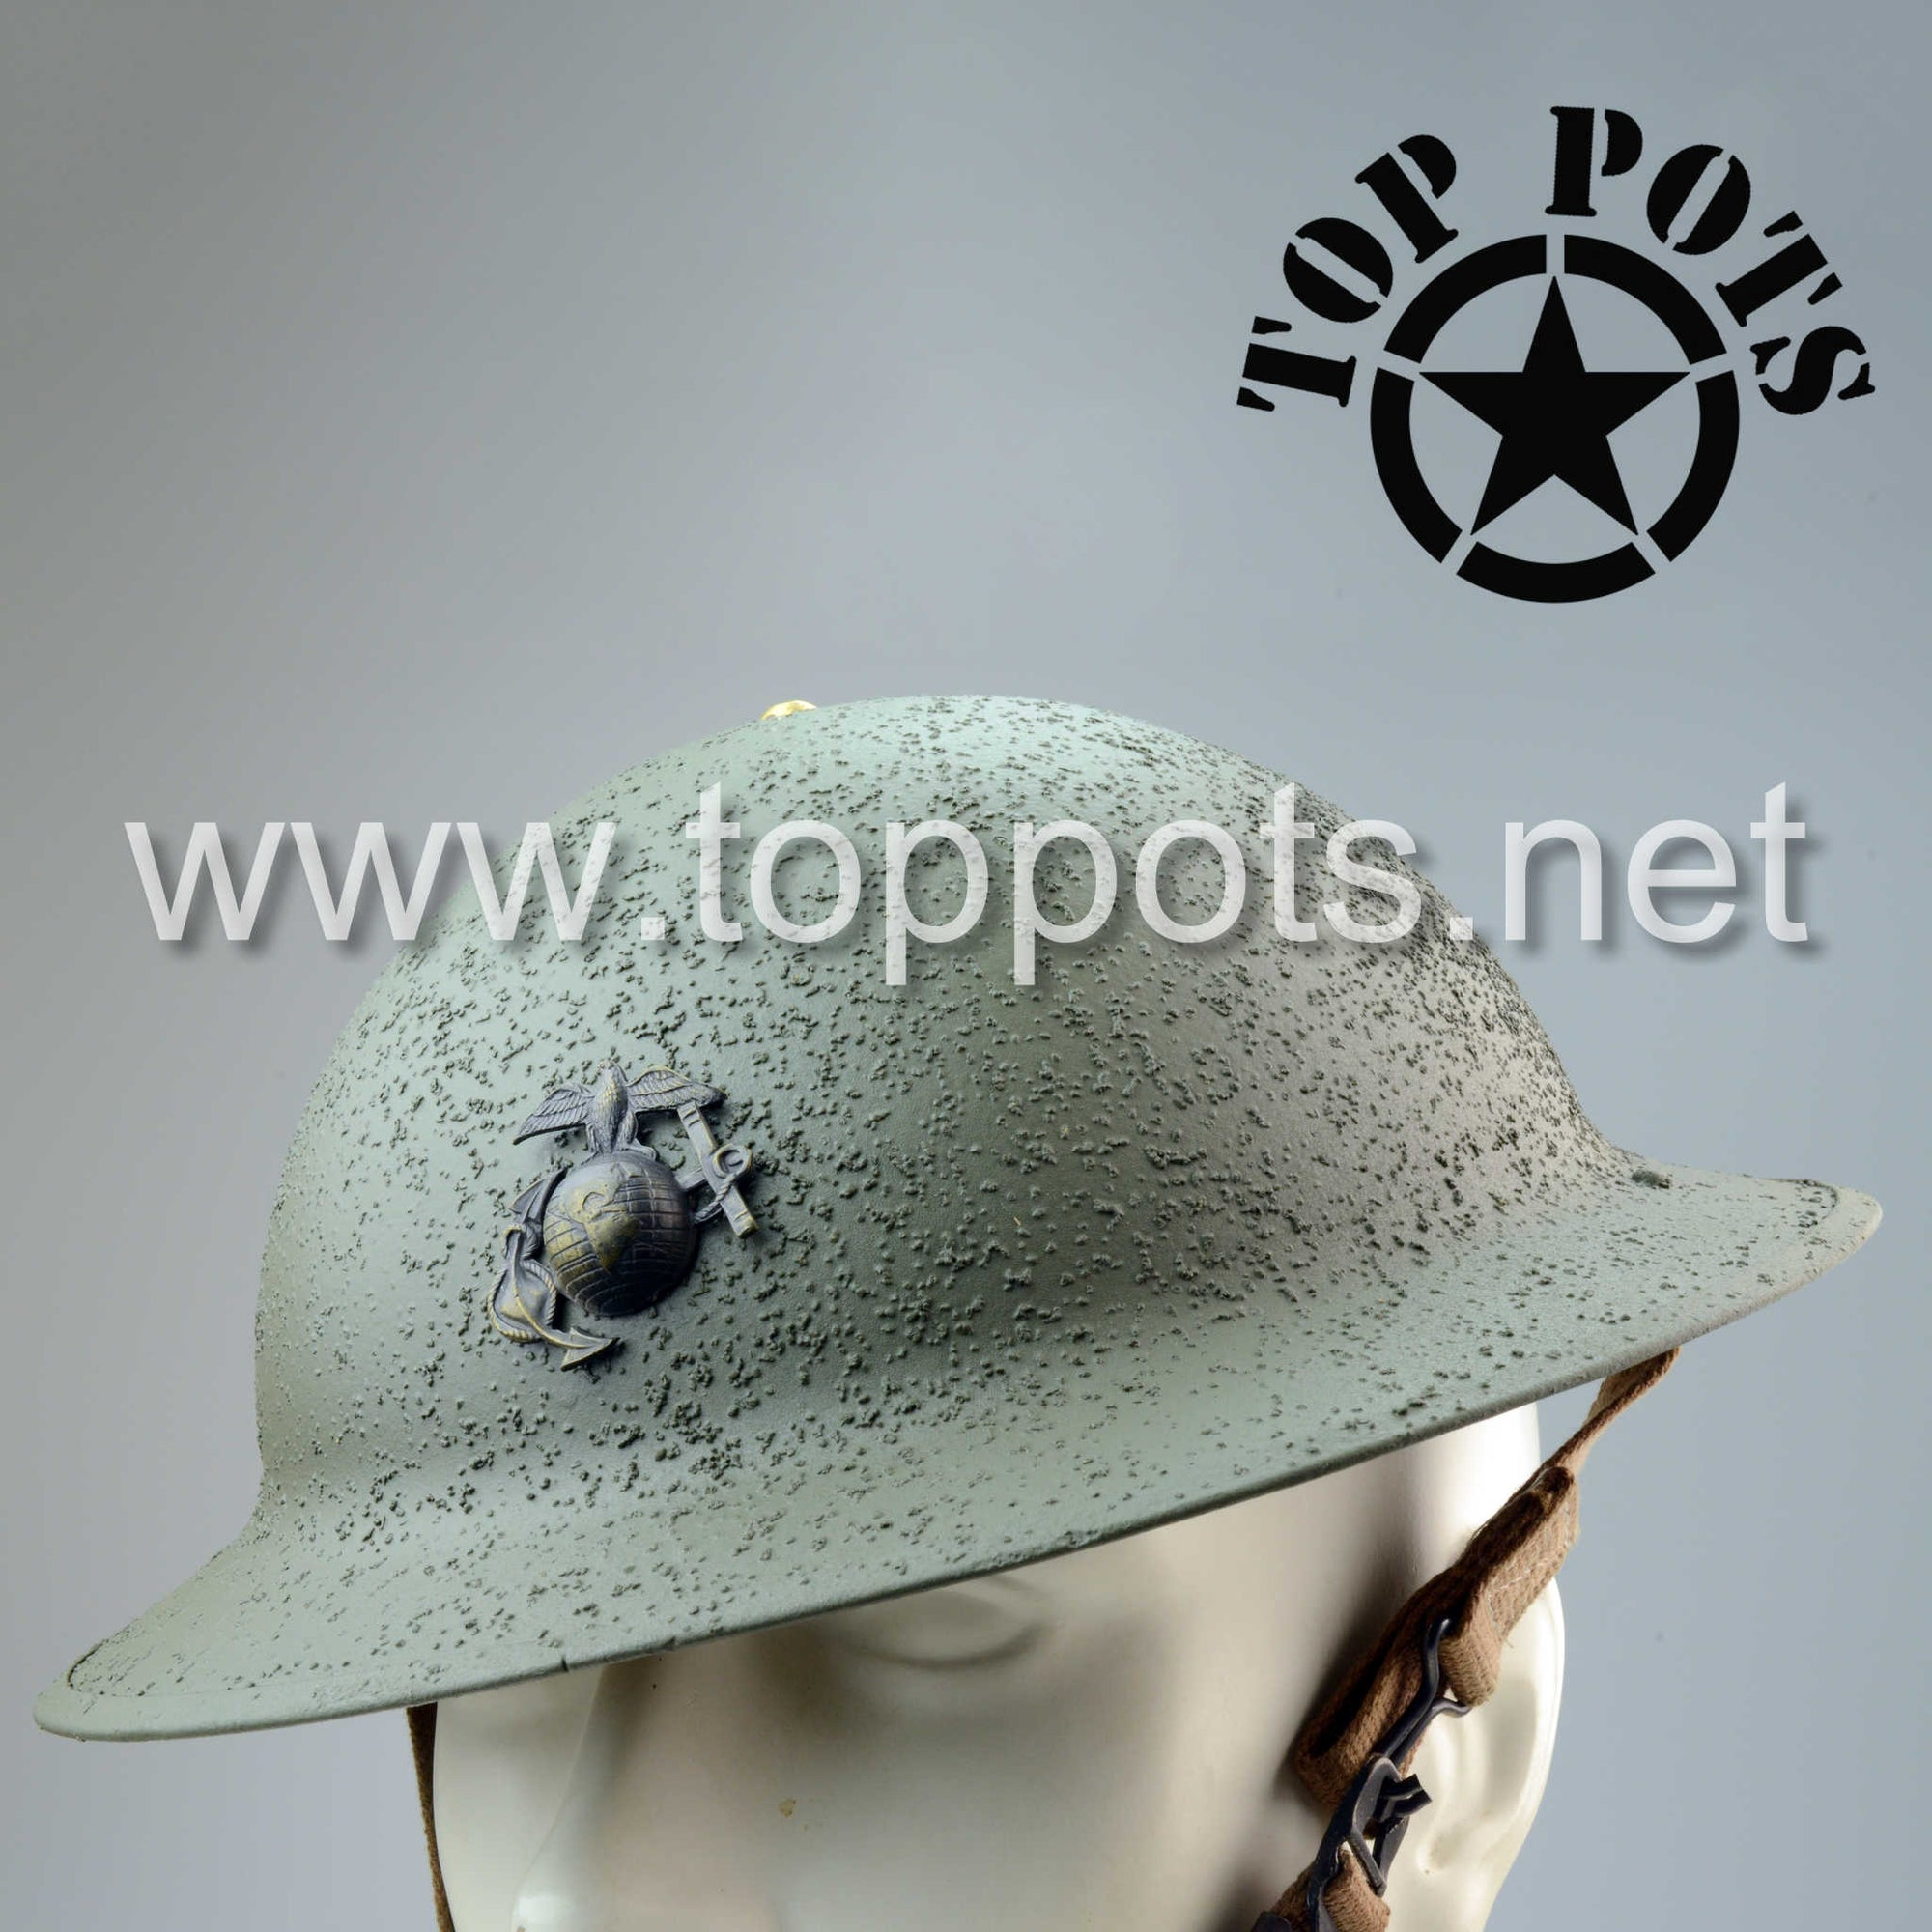 WWII USMC Reproduction Marine Corps M1917 Helmet with Liner and EGA – Textured Finish